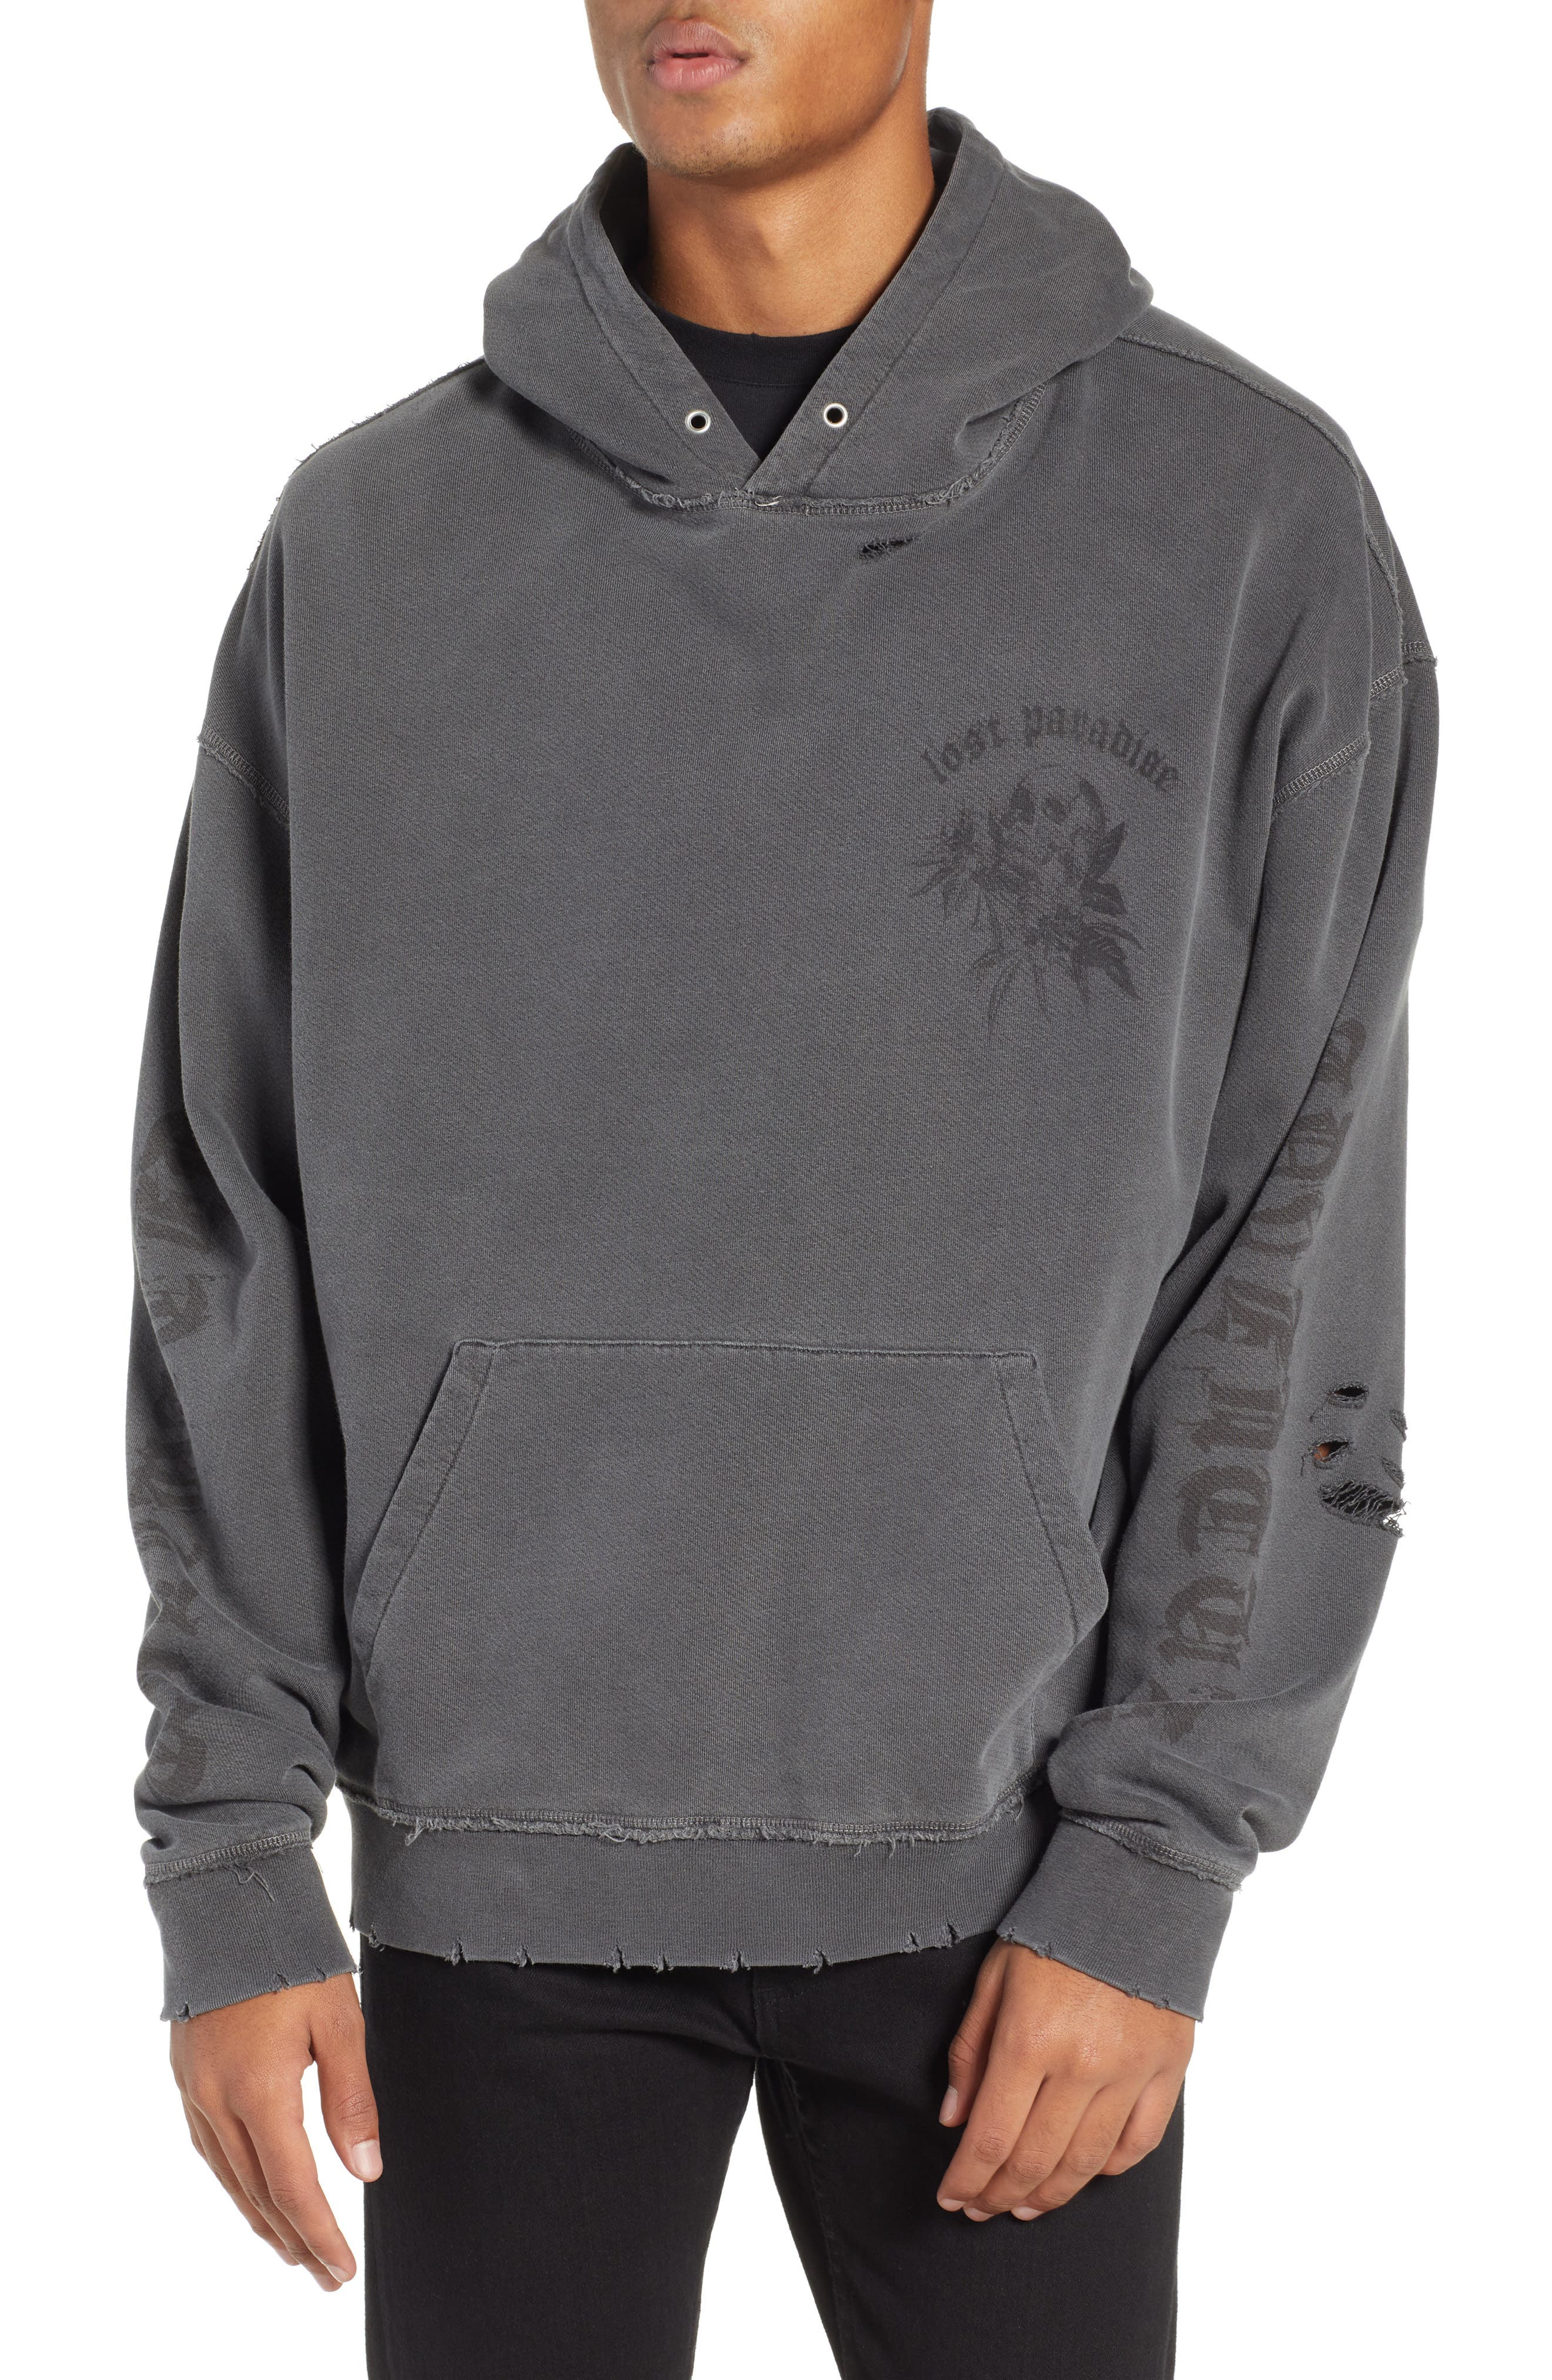 THE KOOPLES, Oversize Hoodie, Main thumbnail 1, color, 050